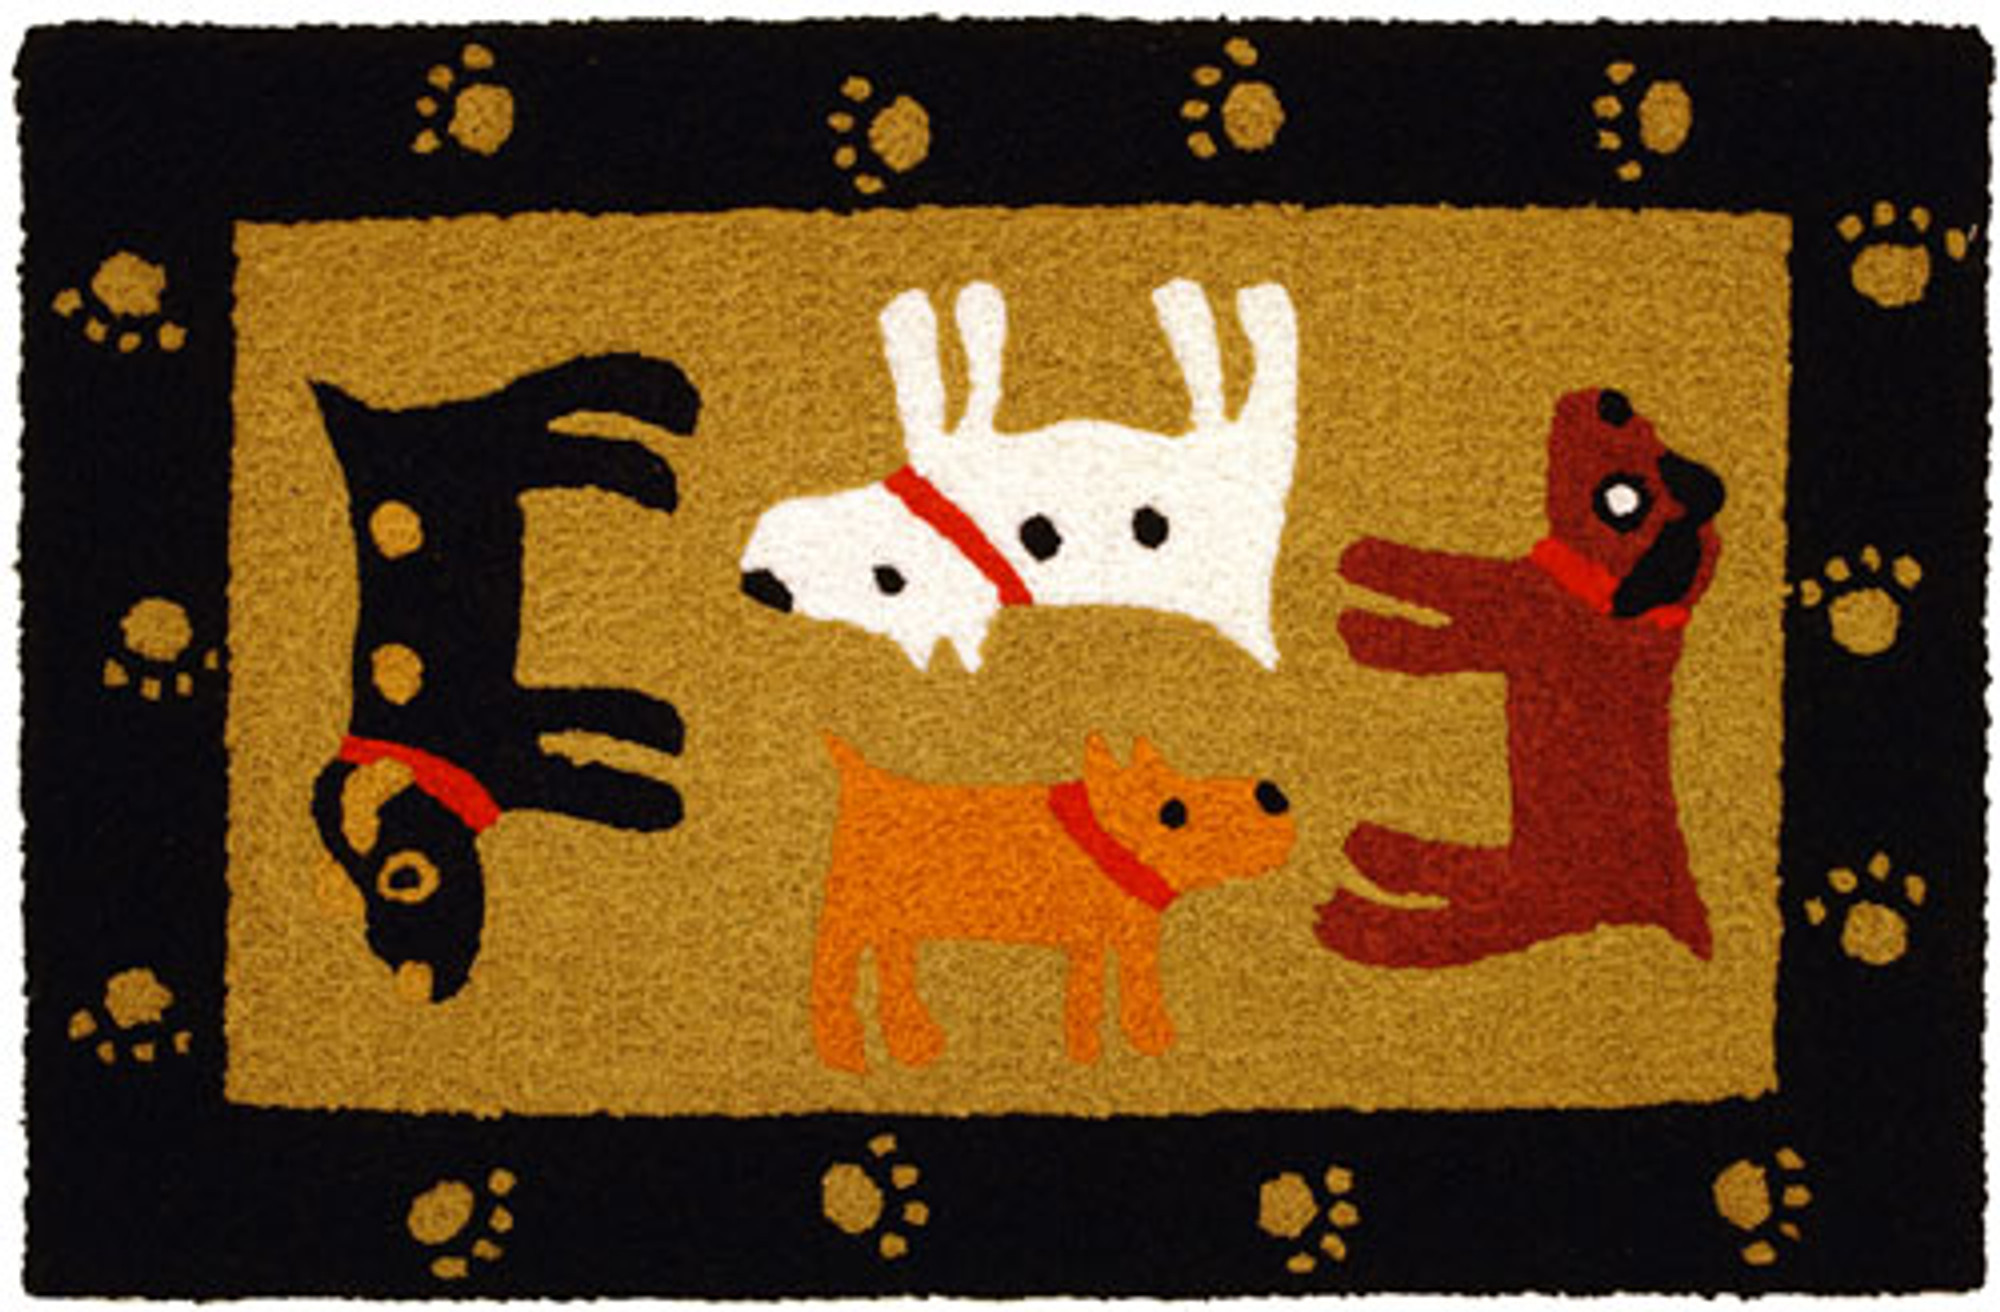 A colorful, machine washable Jellybean® rug featuring 4 very happy dogs in a cute black frame!